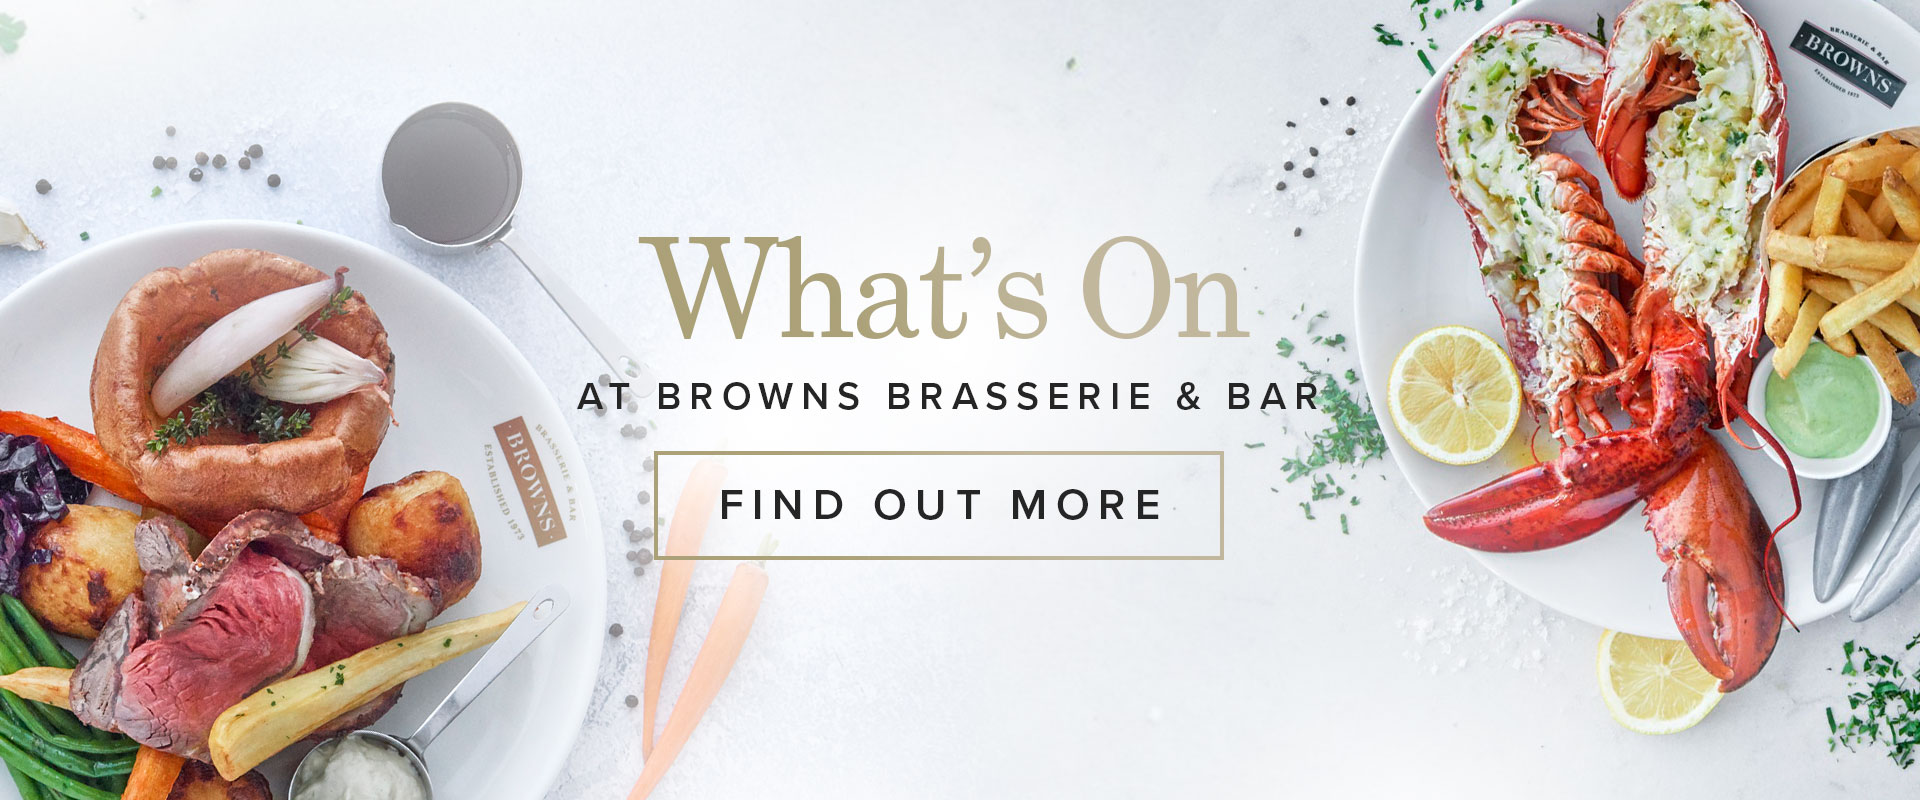 What's On at Browns Brighton